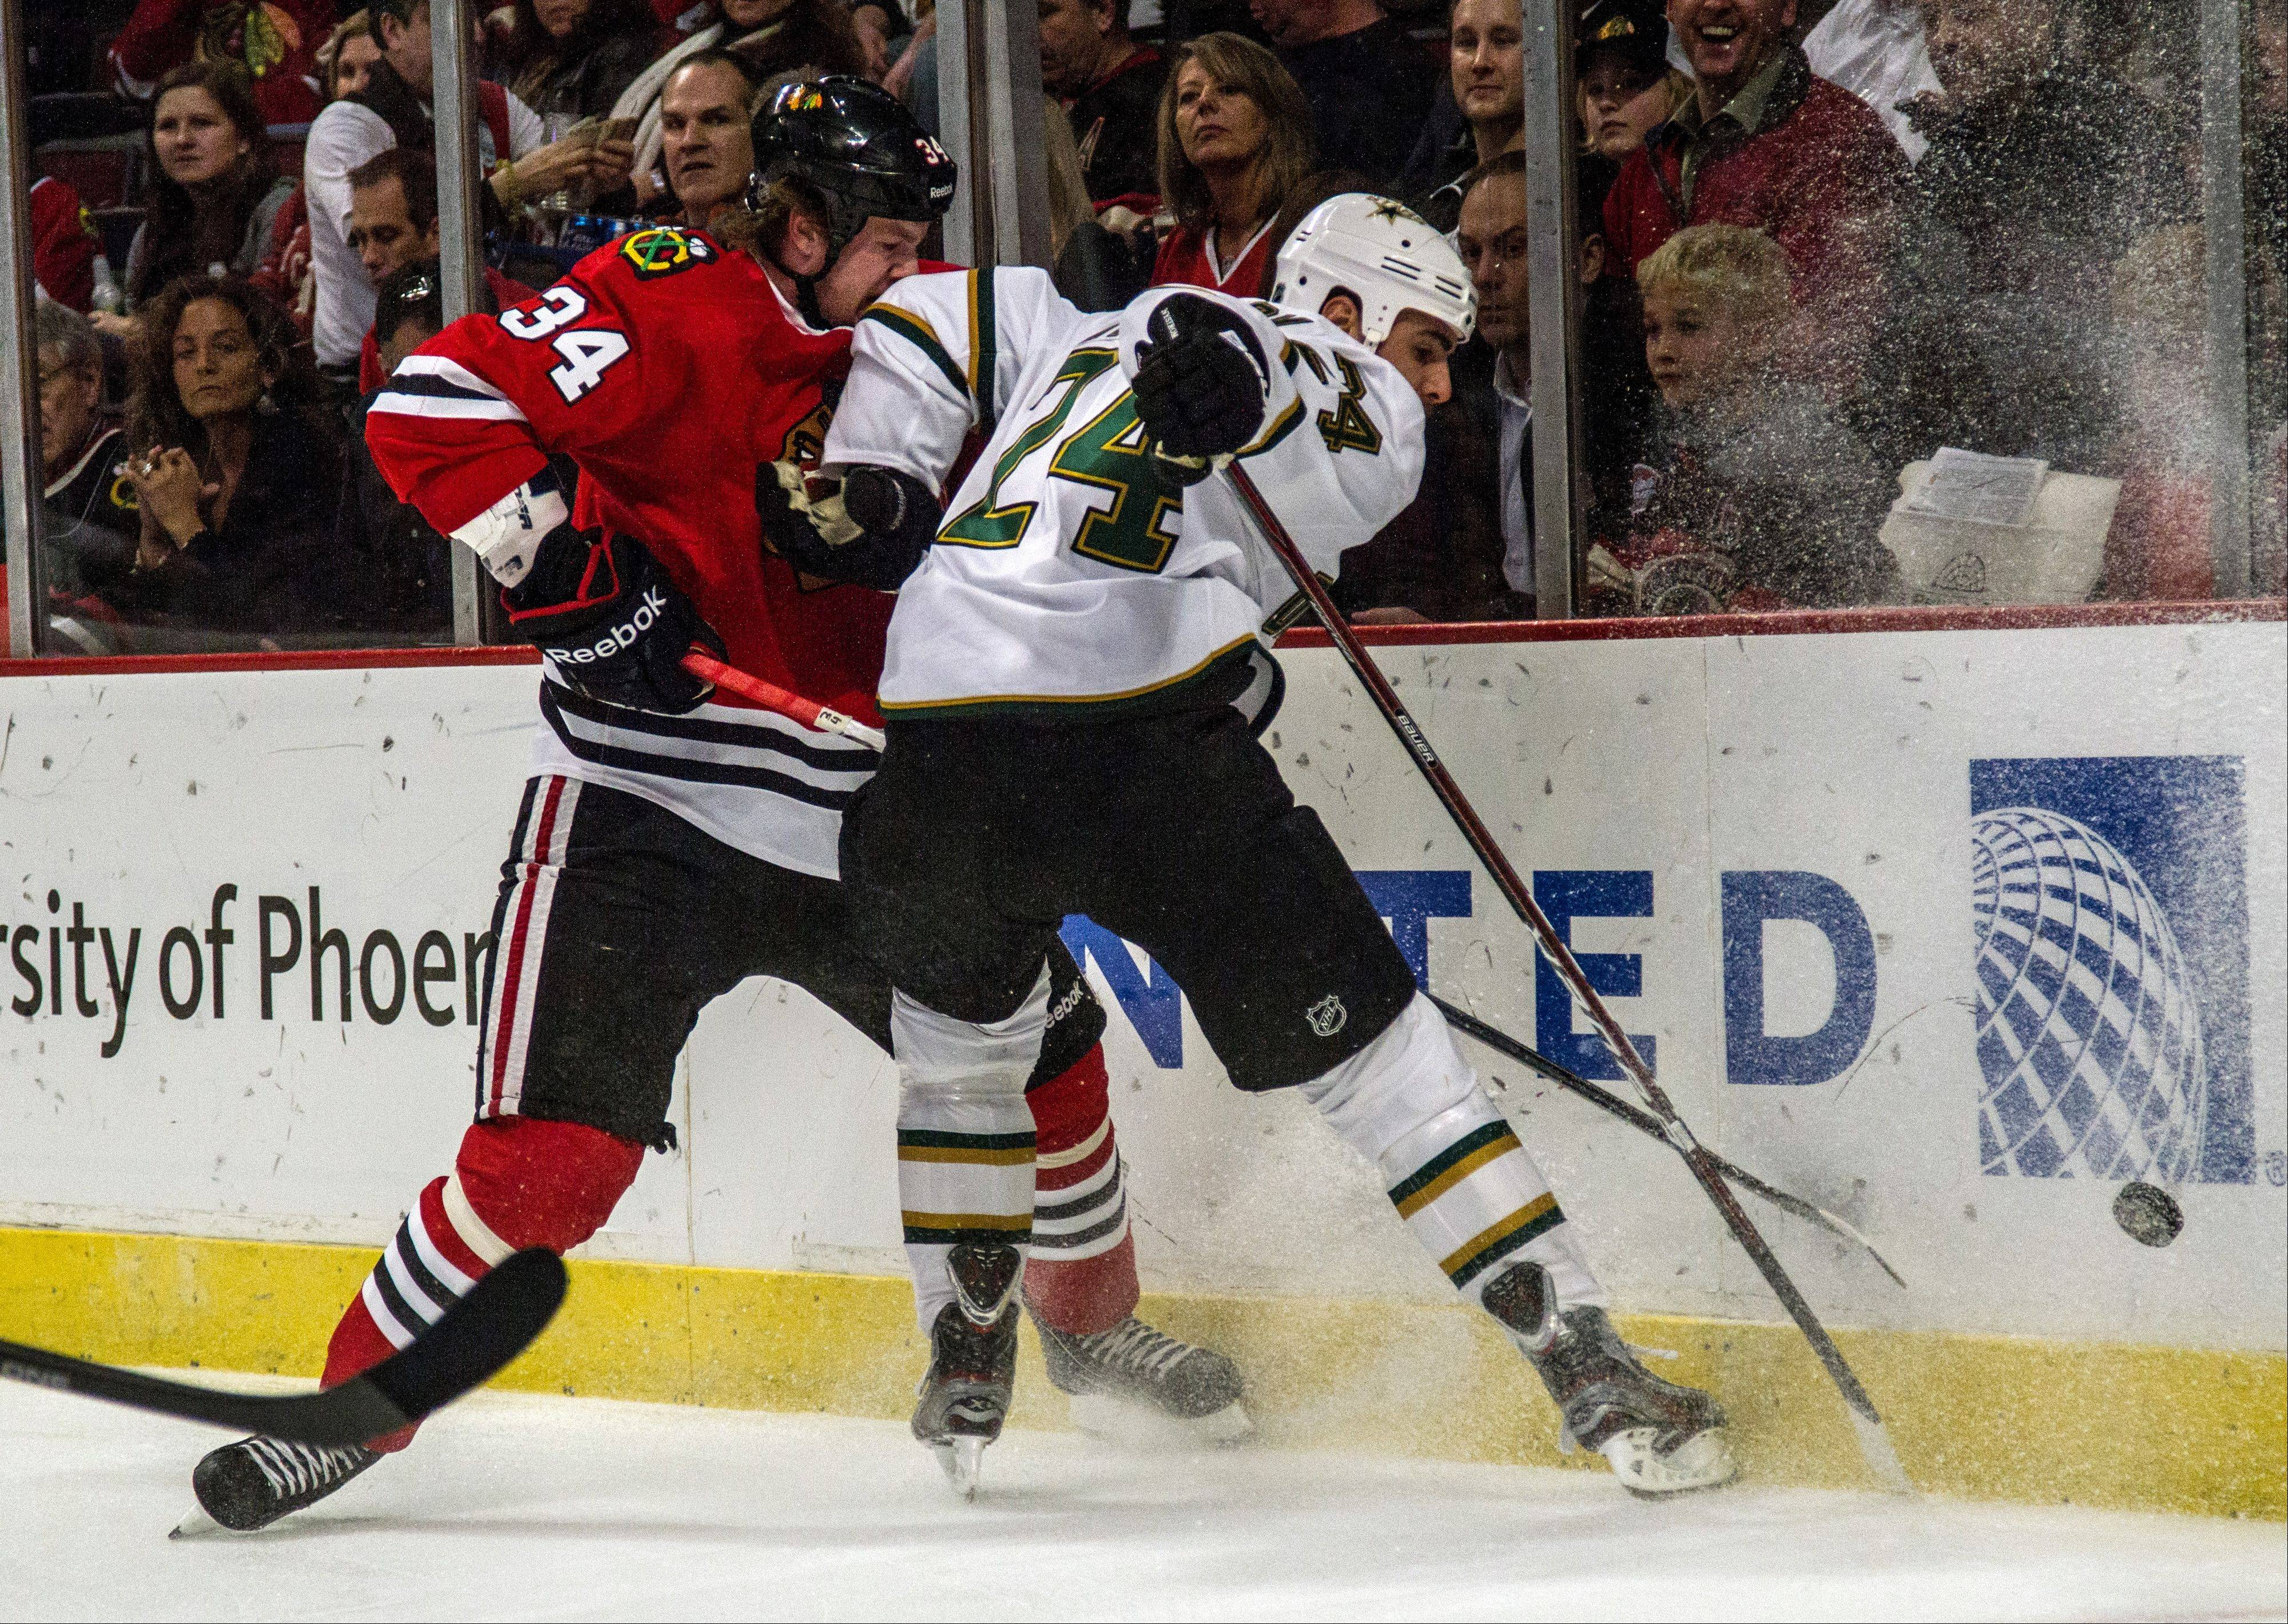 The Blackhawks' Dylan Olsen gets an elbow to the face from the Dallas Stars' Eric Nystrom while battling for the puck earlier this season.